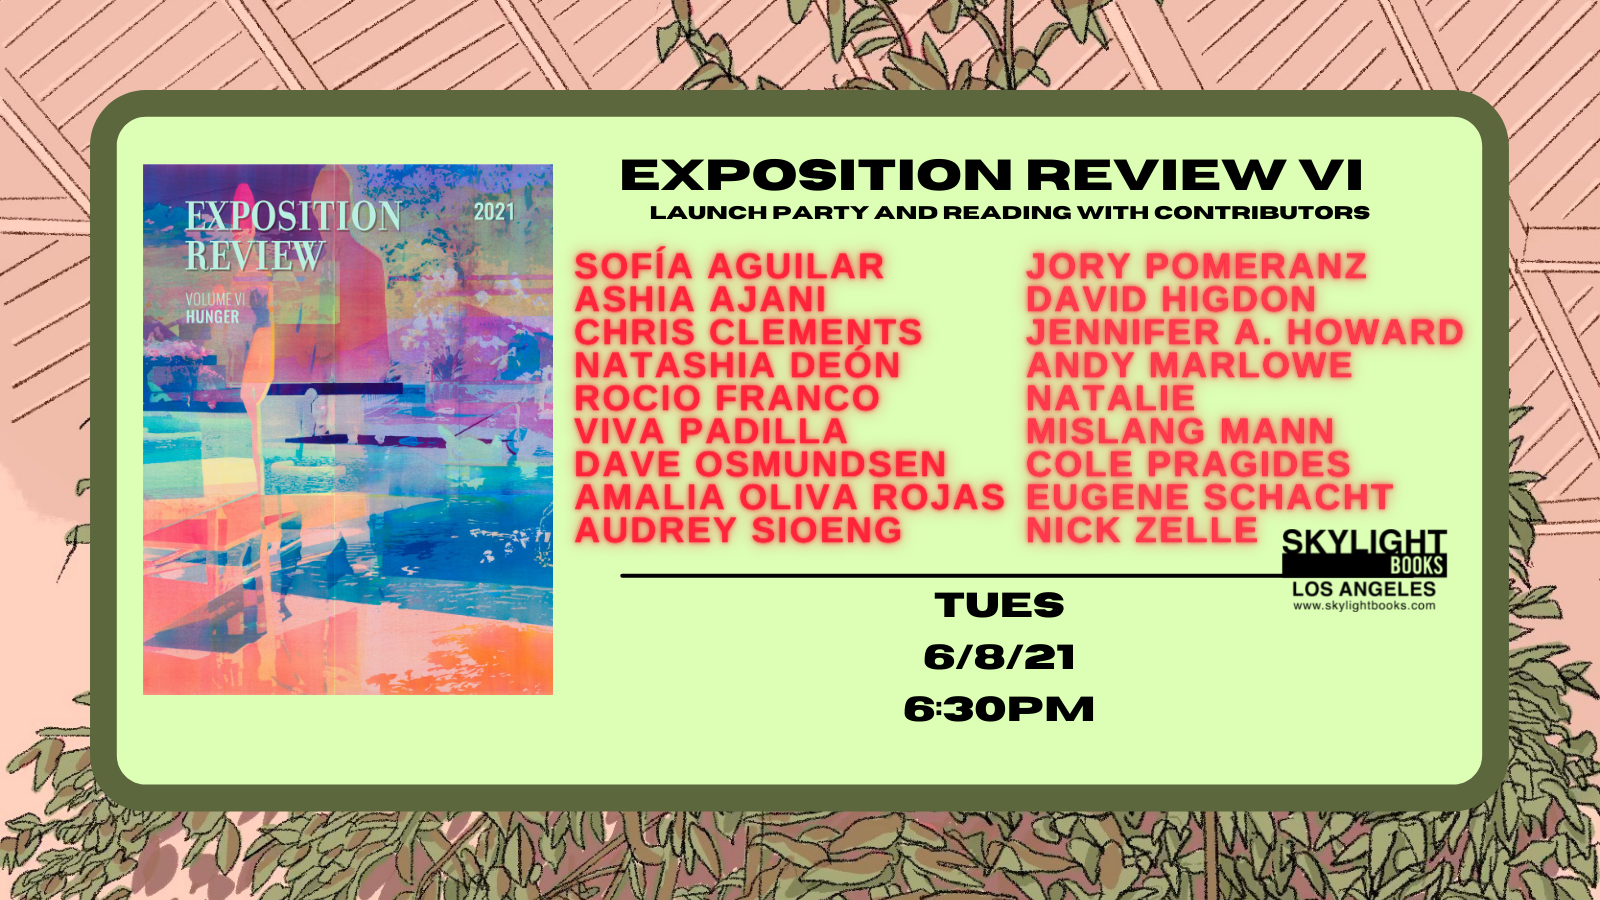 Skylight books hosted Exposition Review's live reading launch of our Hunger issue!